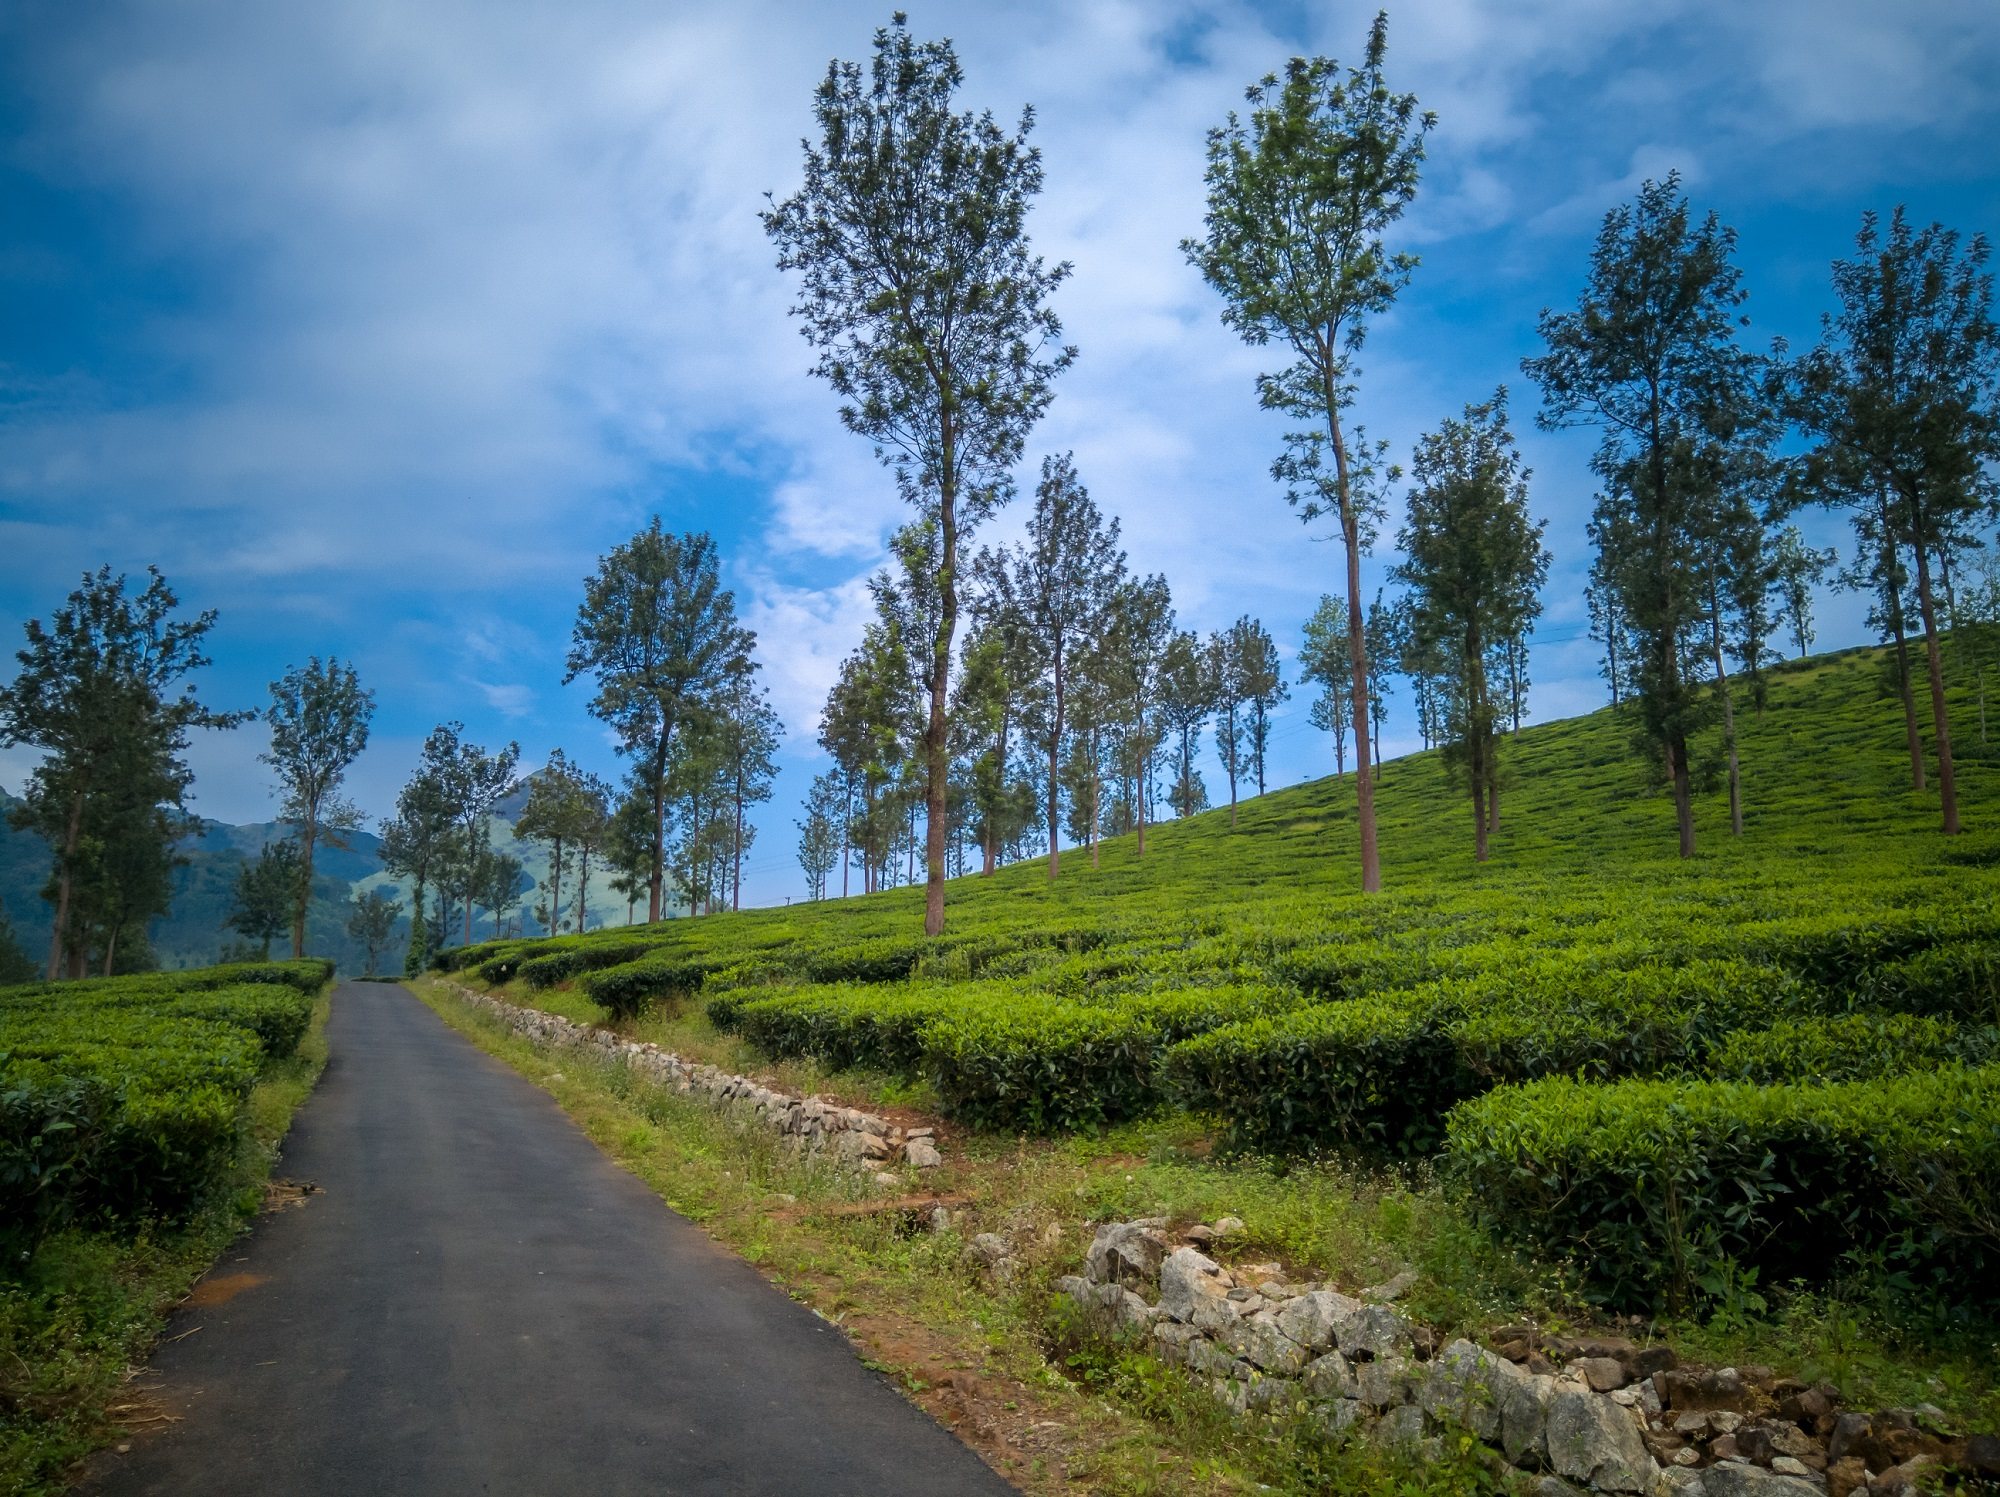 Road through Tea Plantations in Kerala, Wayanad